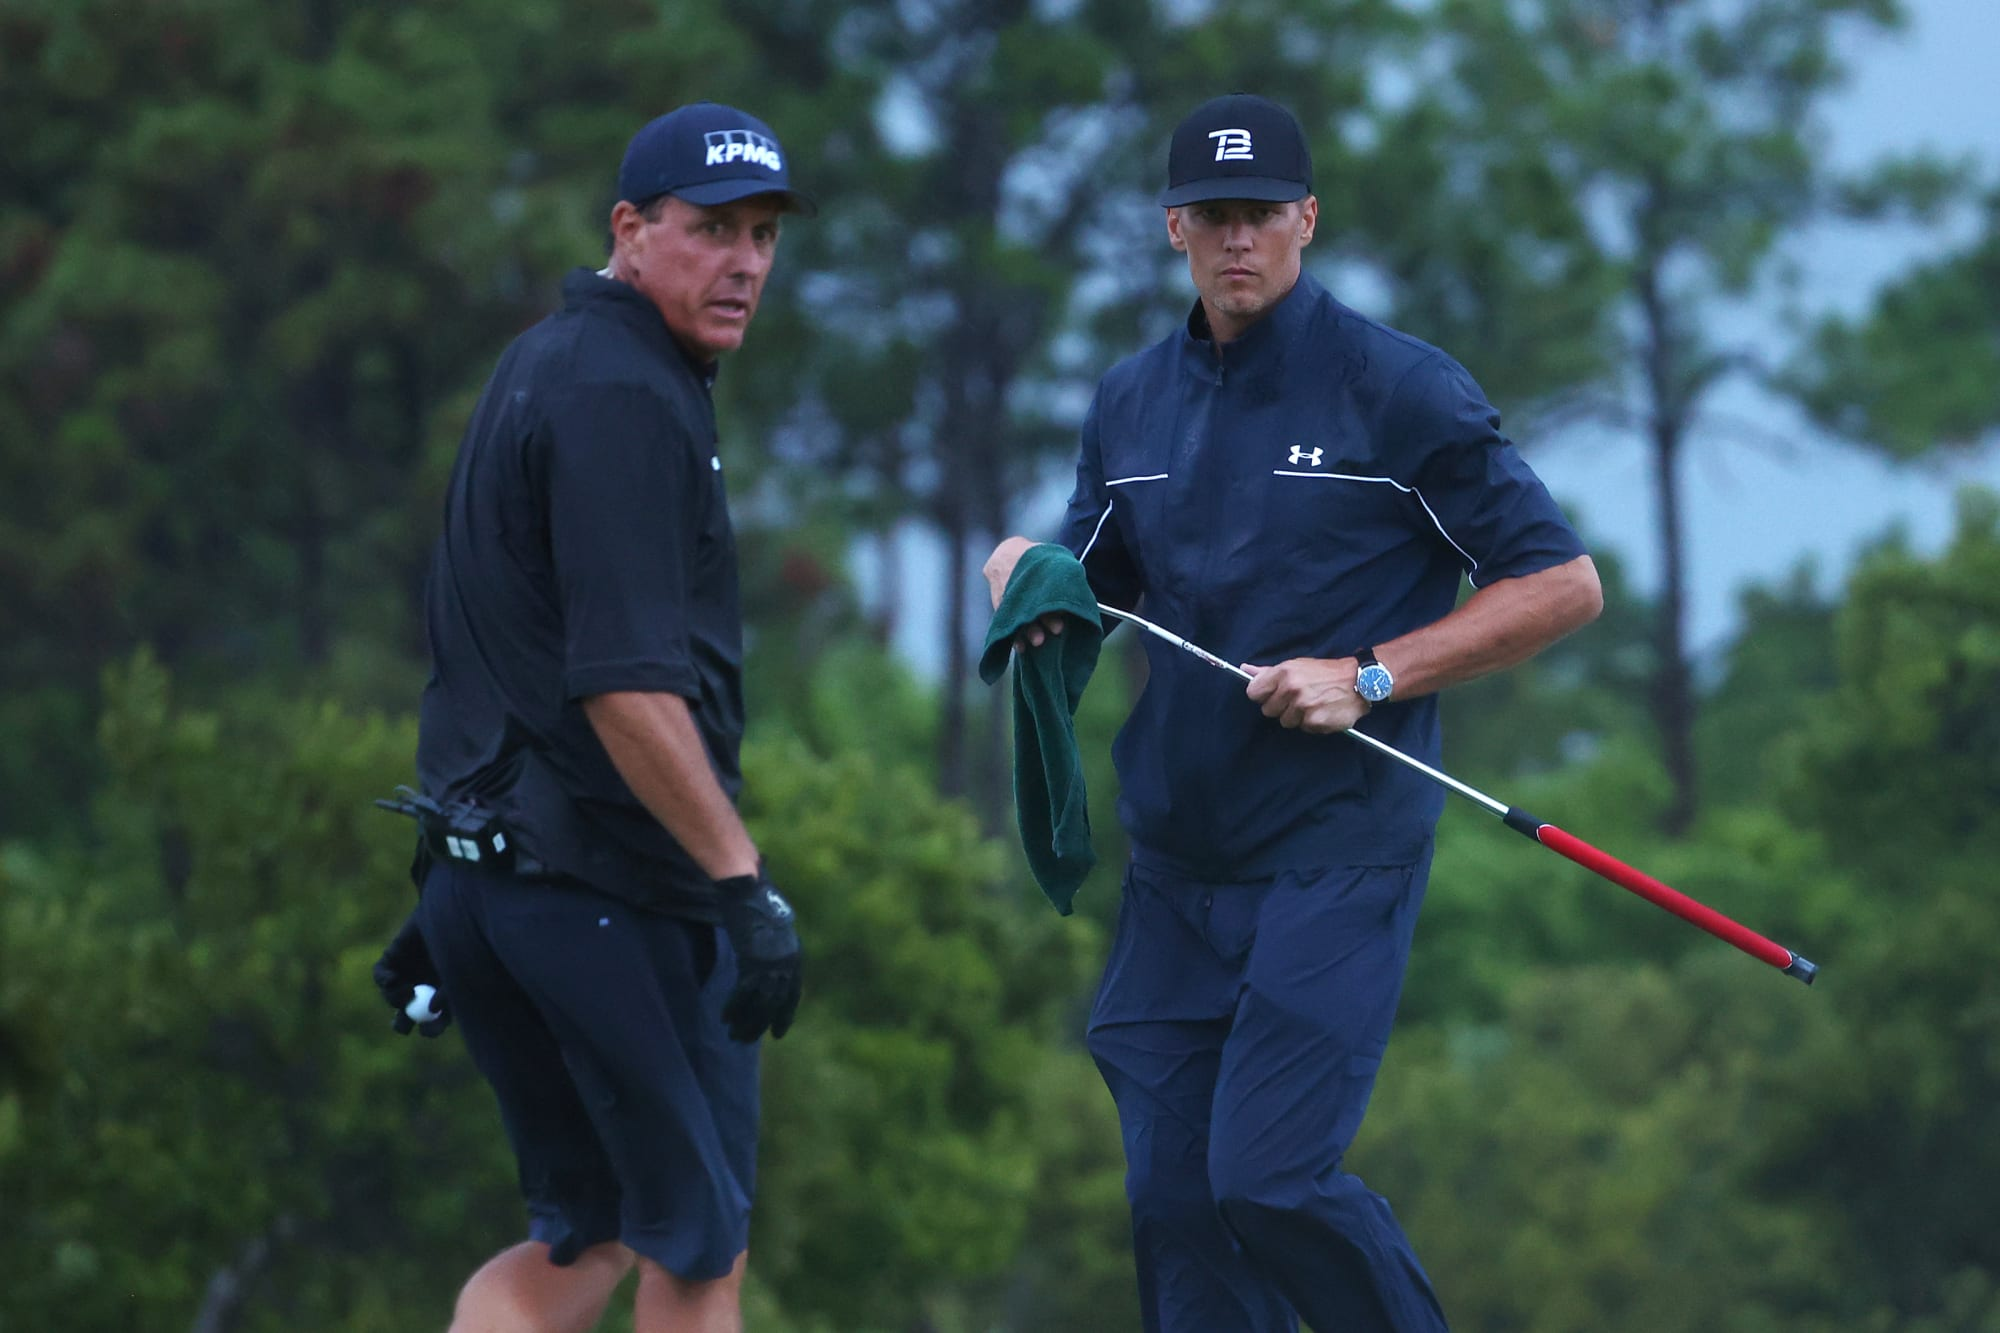 The Match 4: Everything to know about Aaron Rodgers vs. Tom Brady in golf